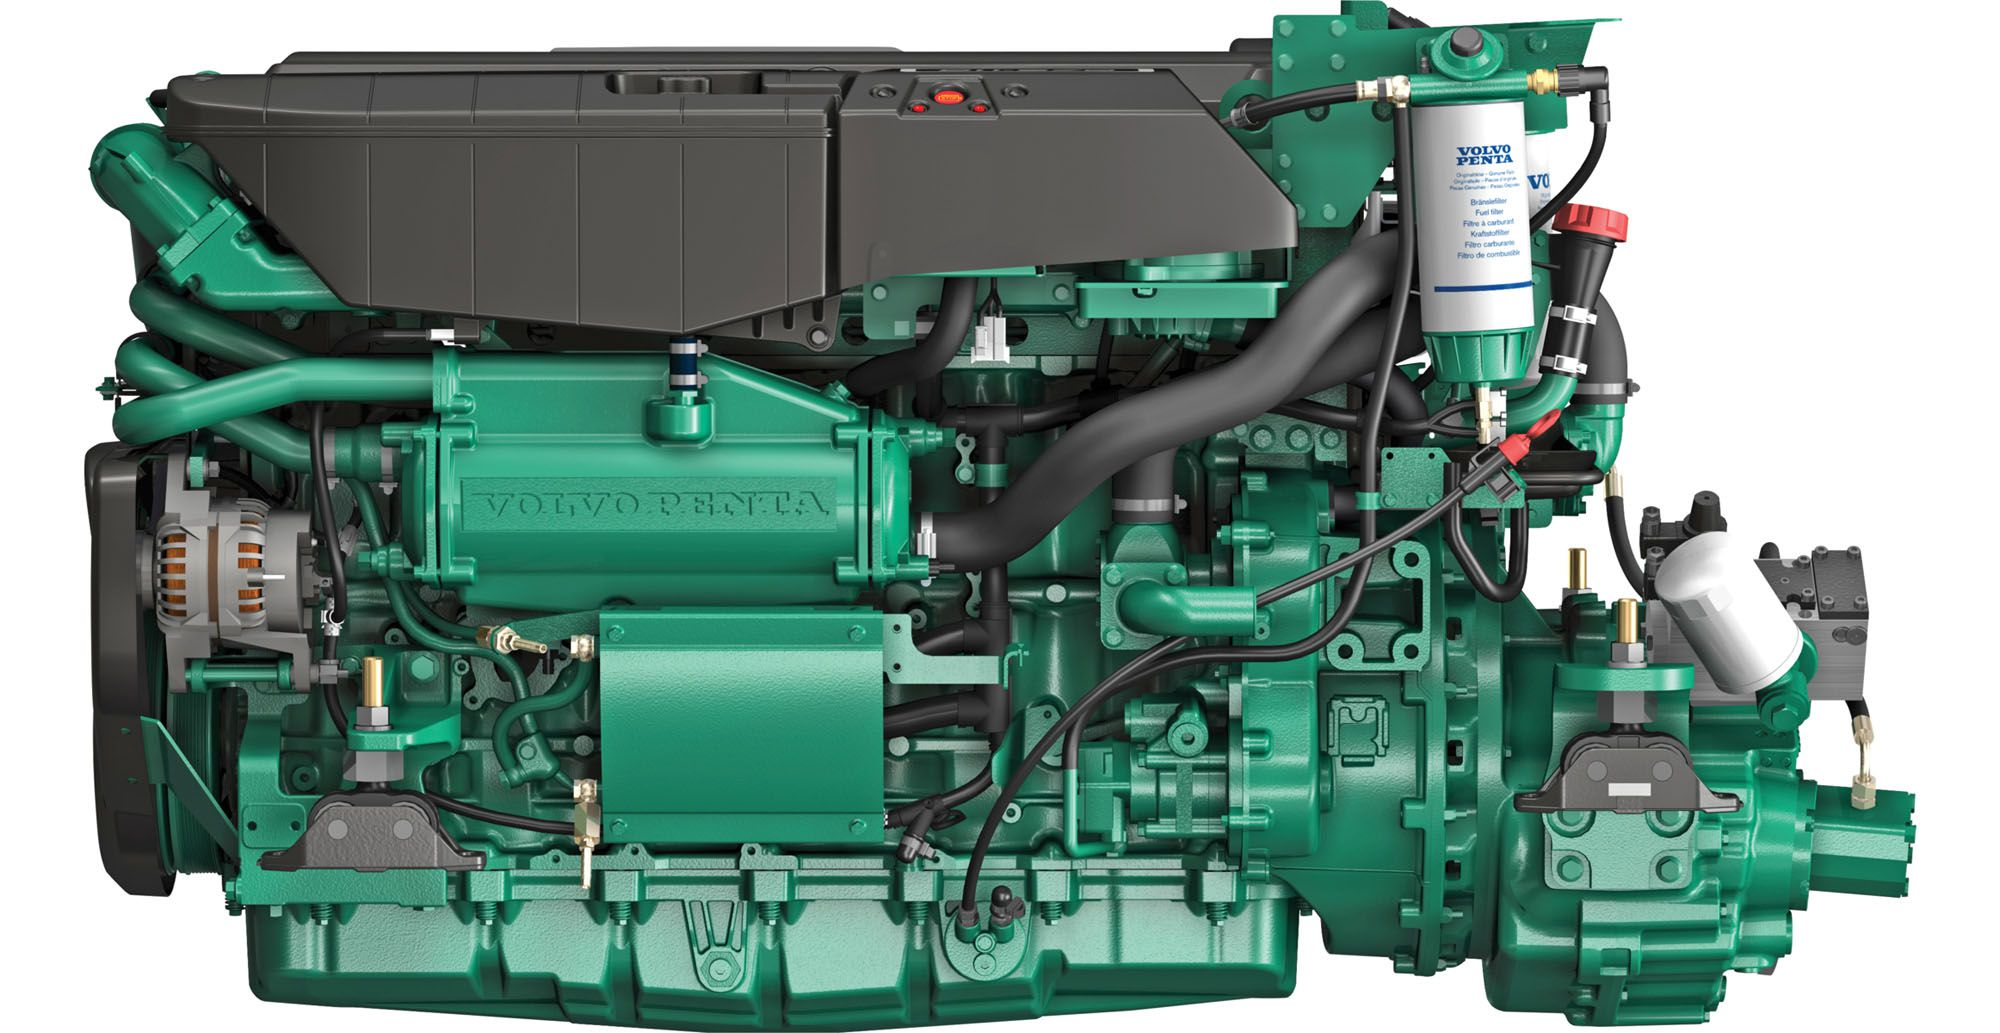 The Cabo 41 features Volvo Penta D11 inline-six-cylinder turbo-diesel inboards. Base engine output is 625 hp per 10.8-liter-displacement diesel.